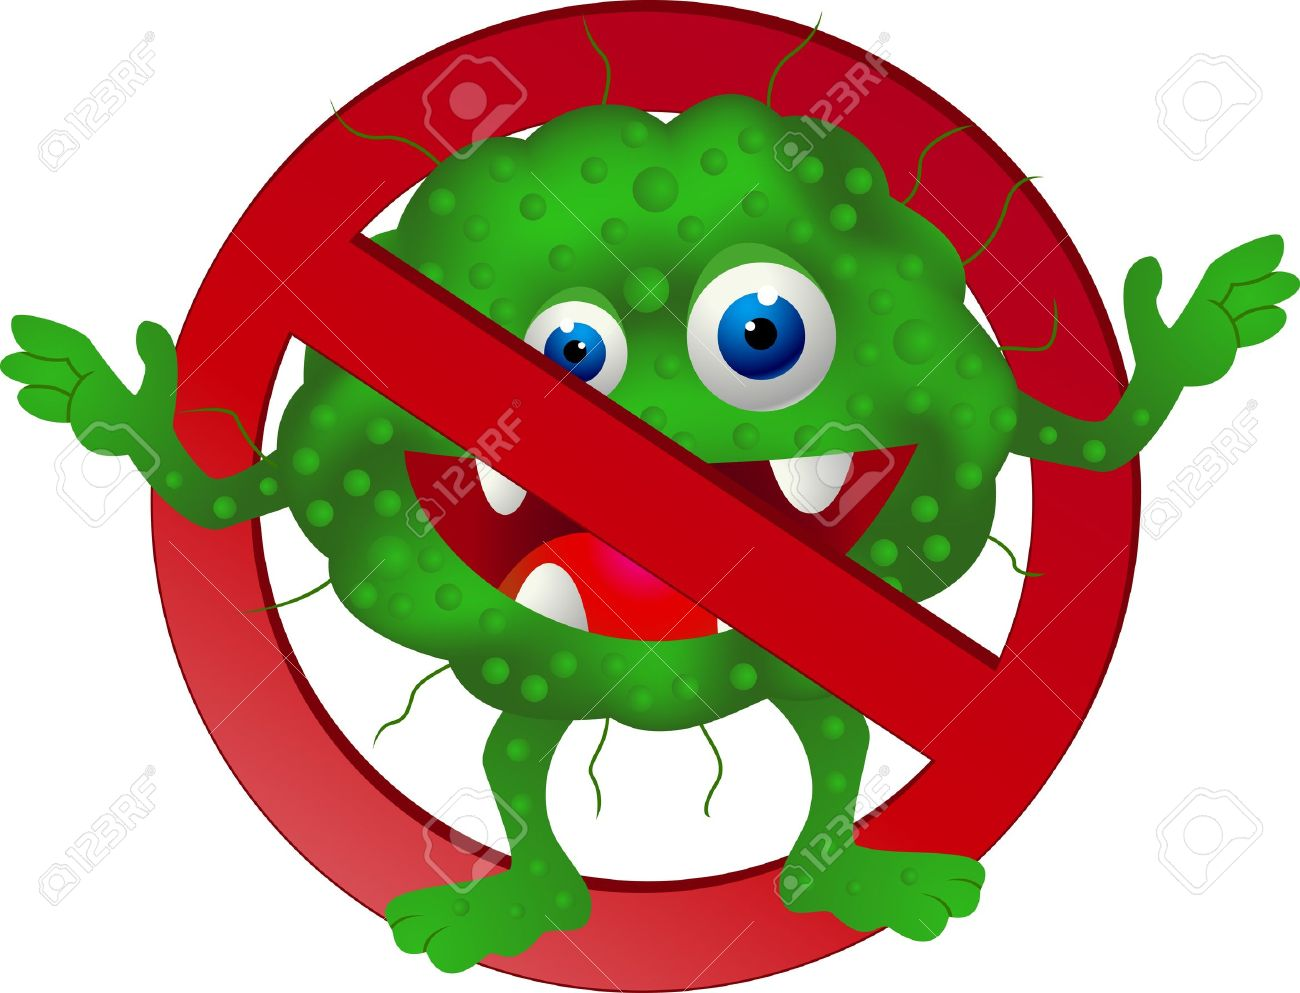 Sick germ pencil and. Germs clipart